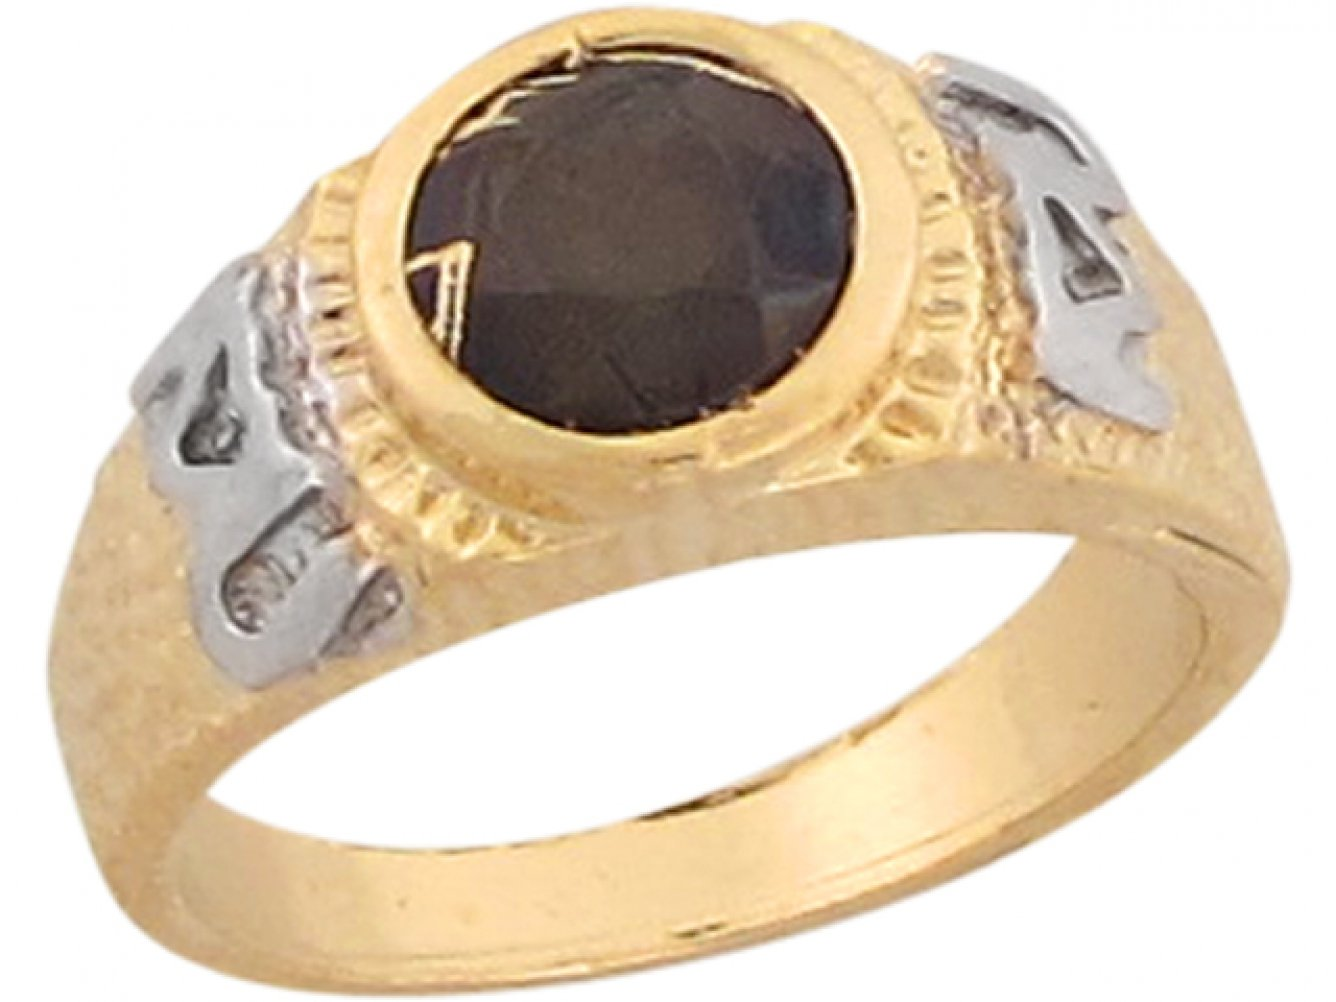 14k Two Tone Gold Black CZ I Love U Unique Aztec Design Baby Ring by Jewelry Liquidation (Image #2)